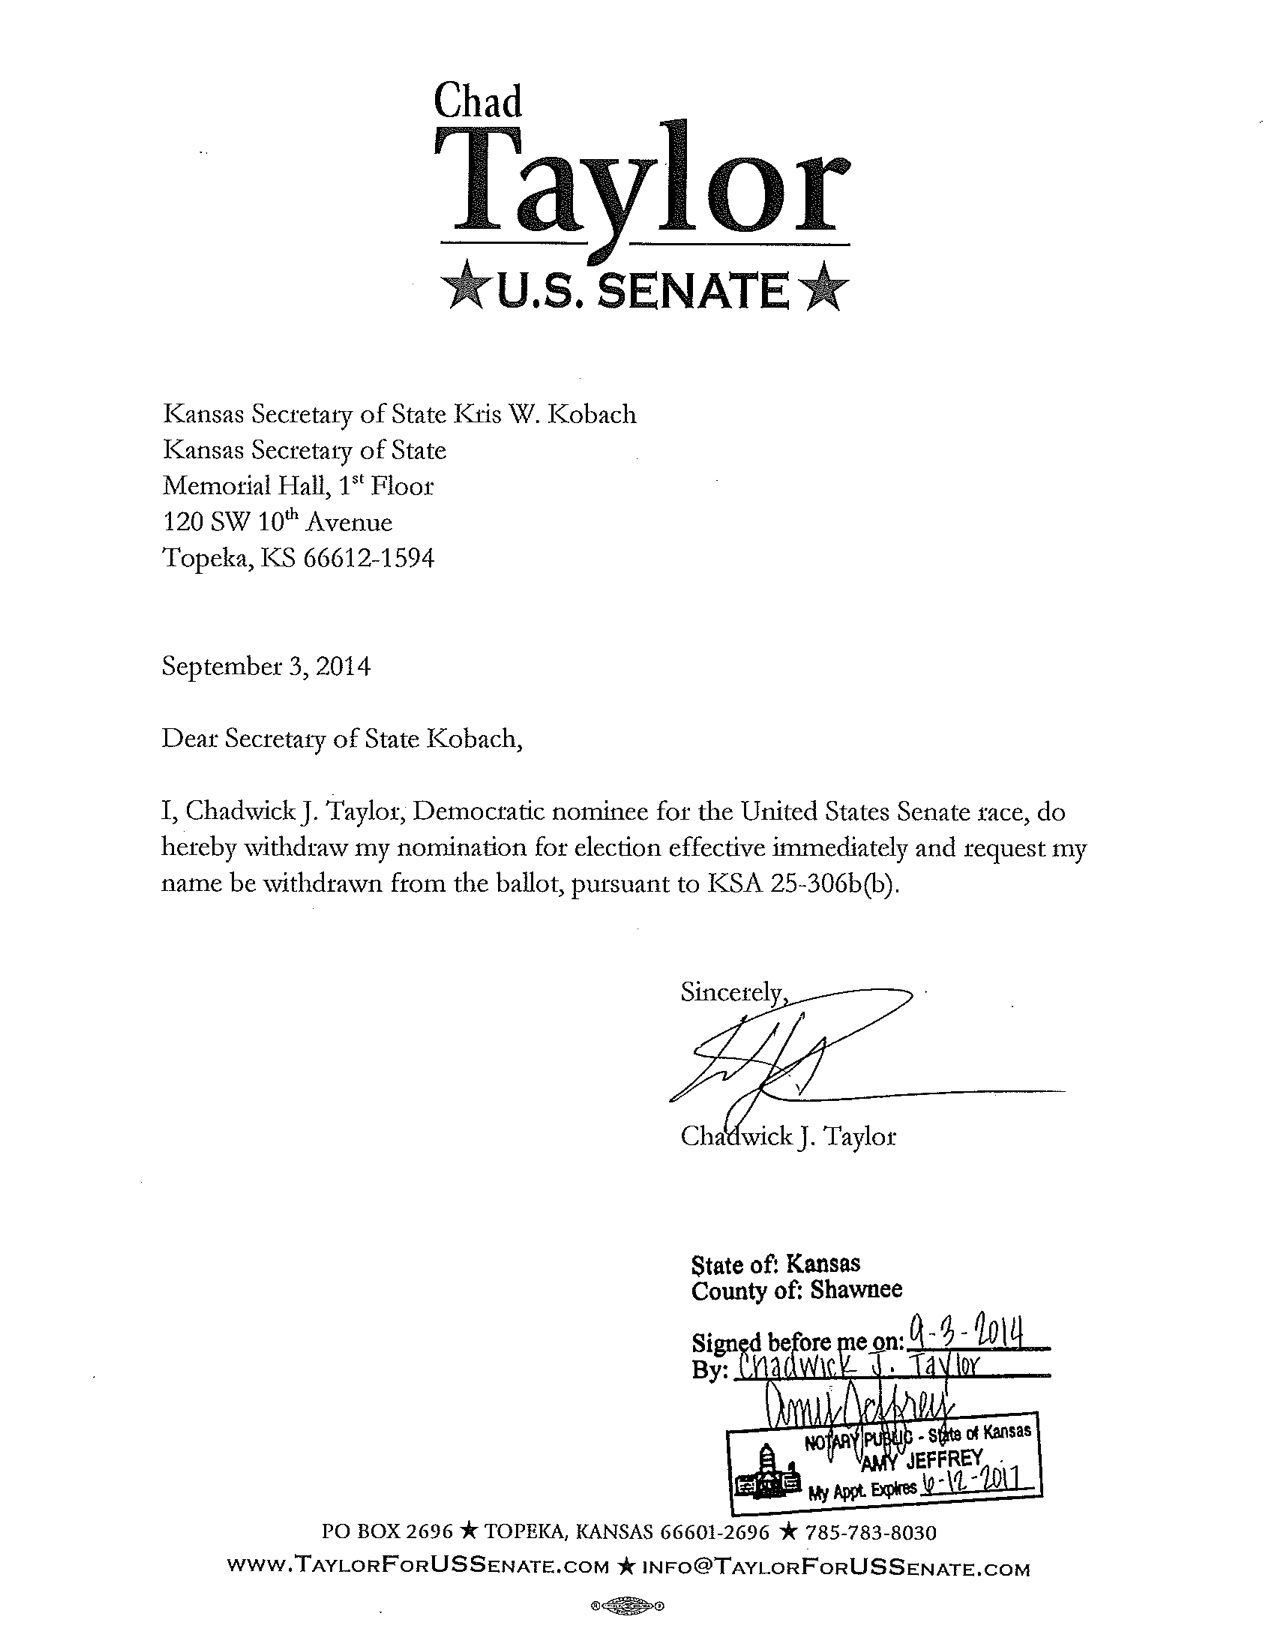 elections 2014 taylor withdraws from u s senate race news SW 10Mm elections 2014 taylor withdraws from u s senate race news sports jobs lawrence journal world news information headlines and events in lawrence